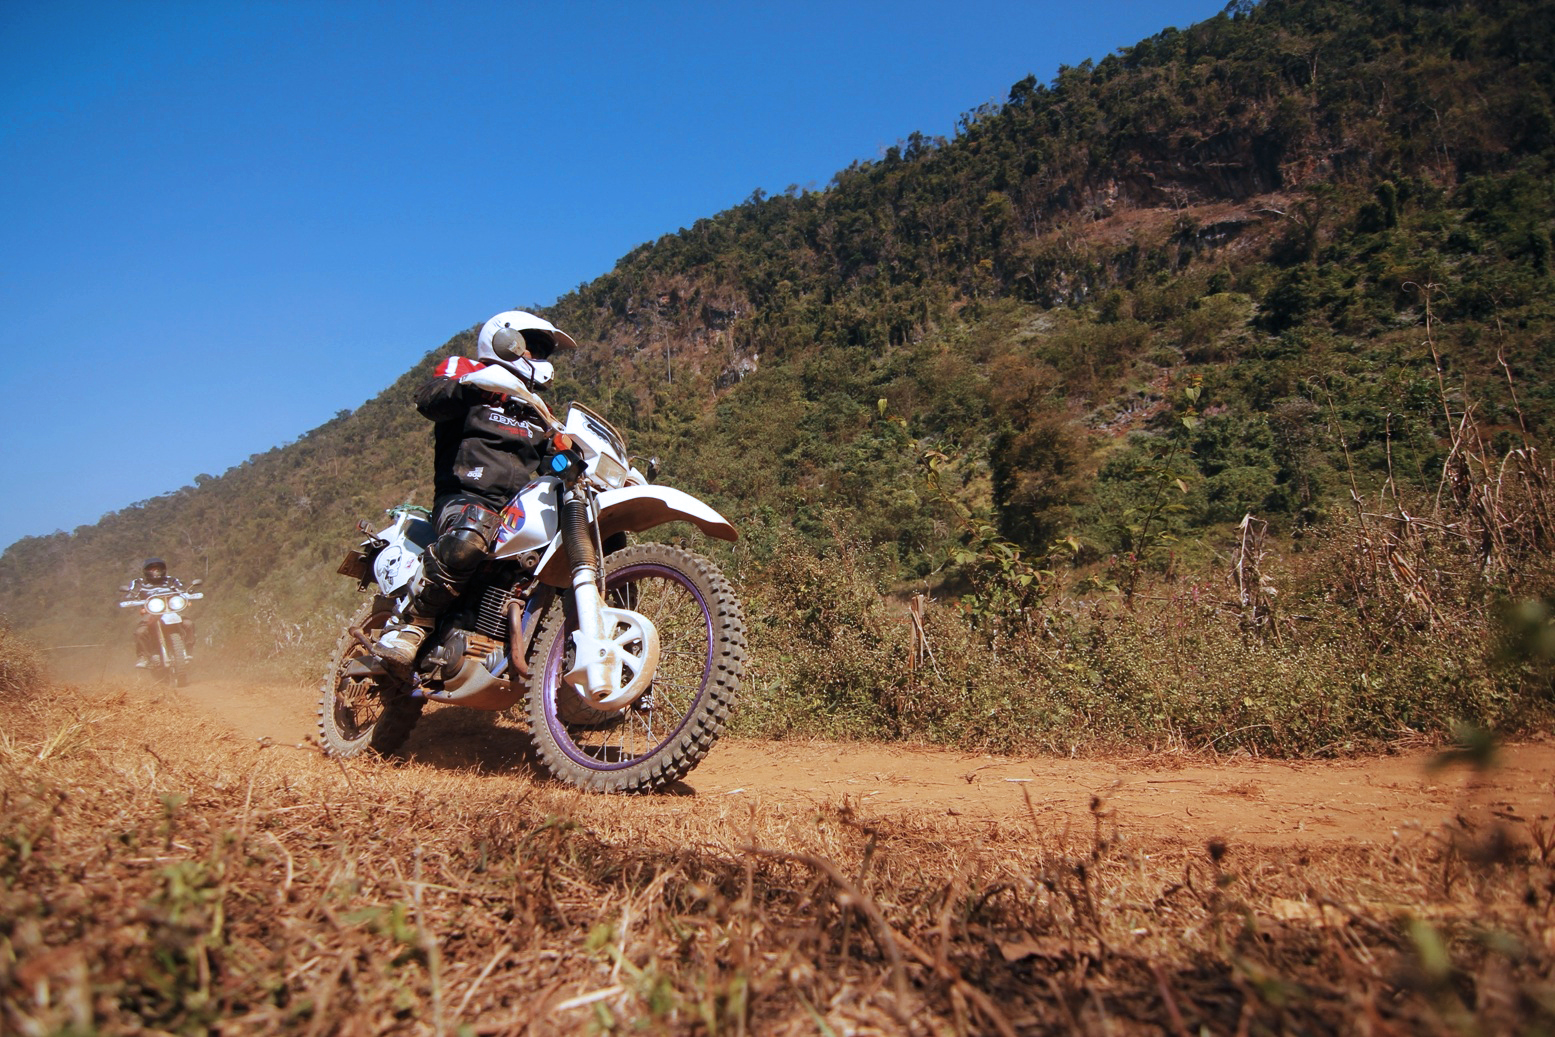 Riding on diverse terrains